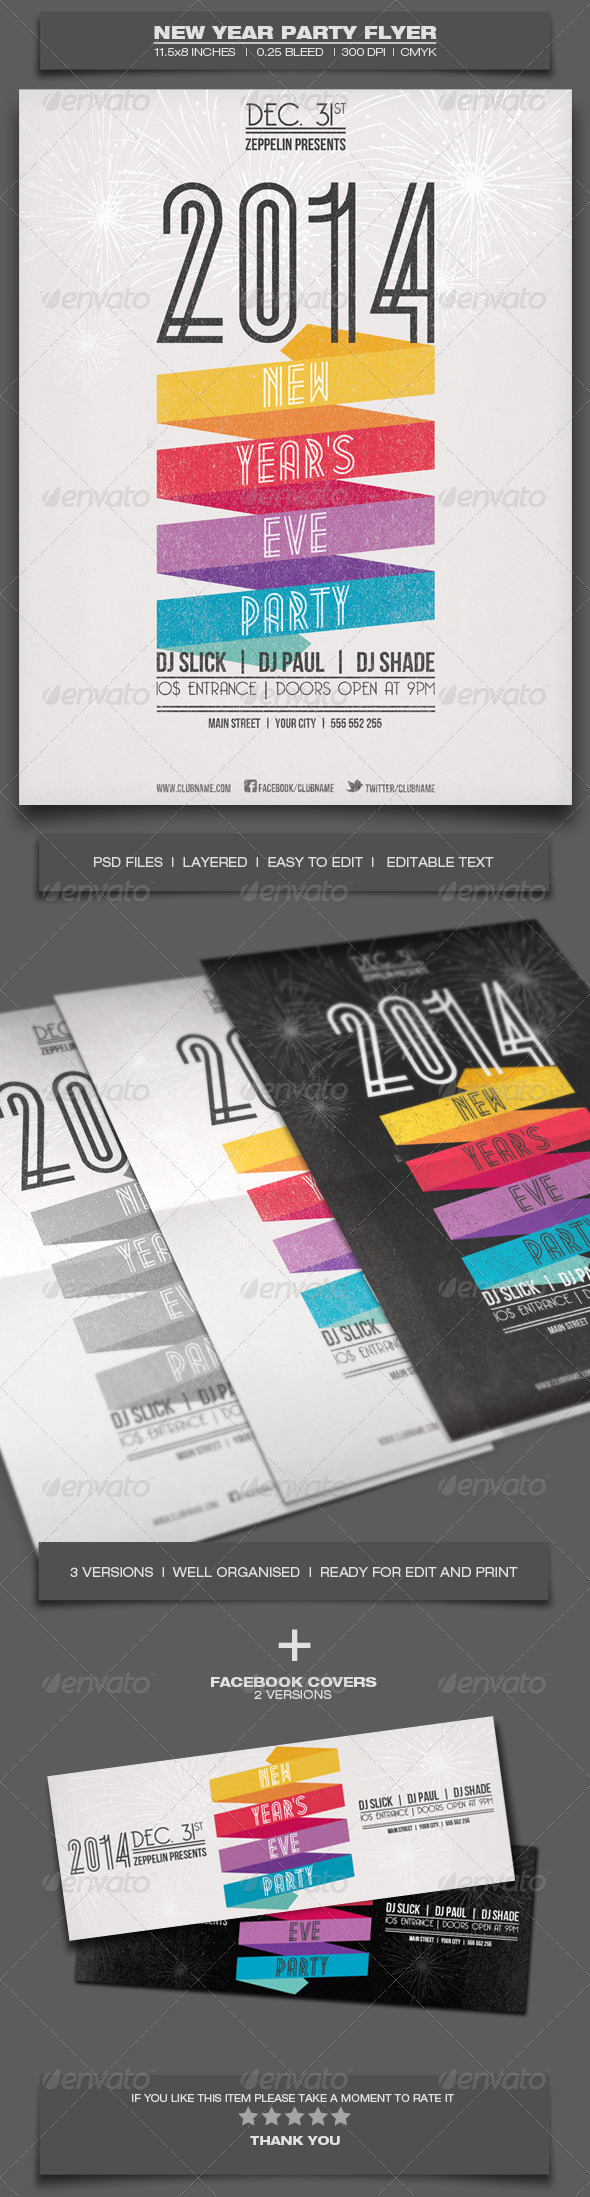 New Year Party - Event Flyer Template - Events Flyers